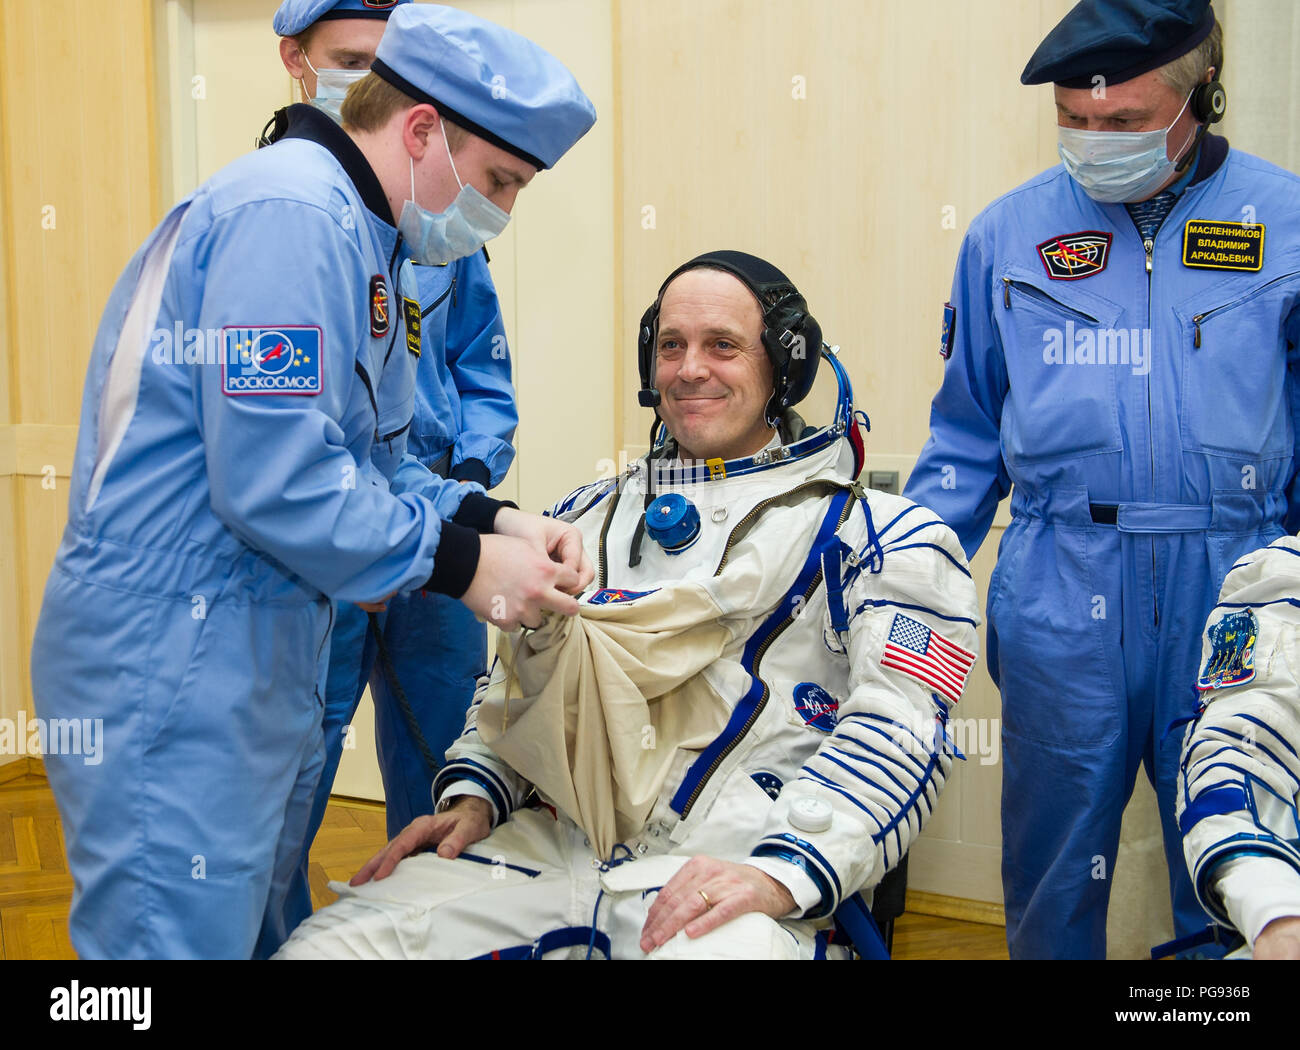 Expedition 55 flight engineer Ricky Arnold of NASA is helped into his Russian Sokol suit as he and fellow crewmates, Soyuz Commander Oleg Artemyev of Roscosmos and flight engineer Drew Feustel of NASA prepare for their Soyuz launch to the International Space Station Wednesday, March 21, 2018 in Baikonur, Kazakhstan. Arnold, Artemyev, and Feustel launched aboard the Soyuz MS-08 spacecraft at 1:44 p.m. Eastern time (11:44 p.m. Baikonur time) on March 21 to begin their journey to the International Space Station. - Stock Image